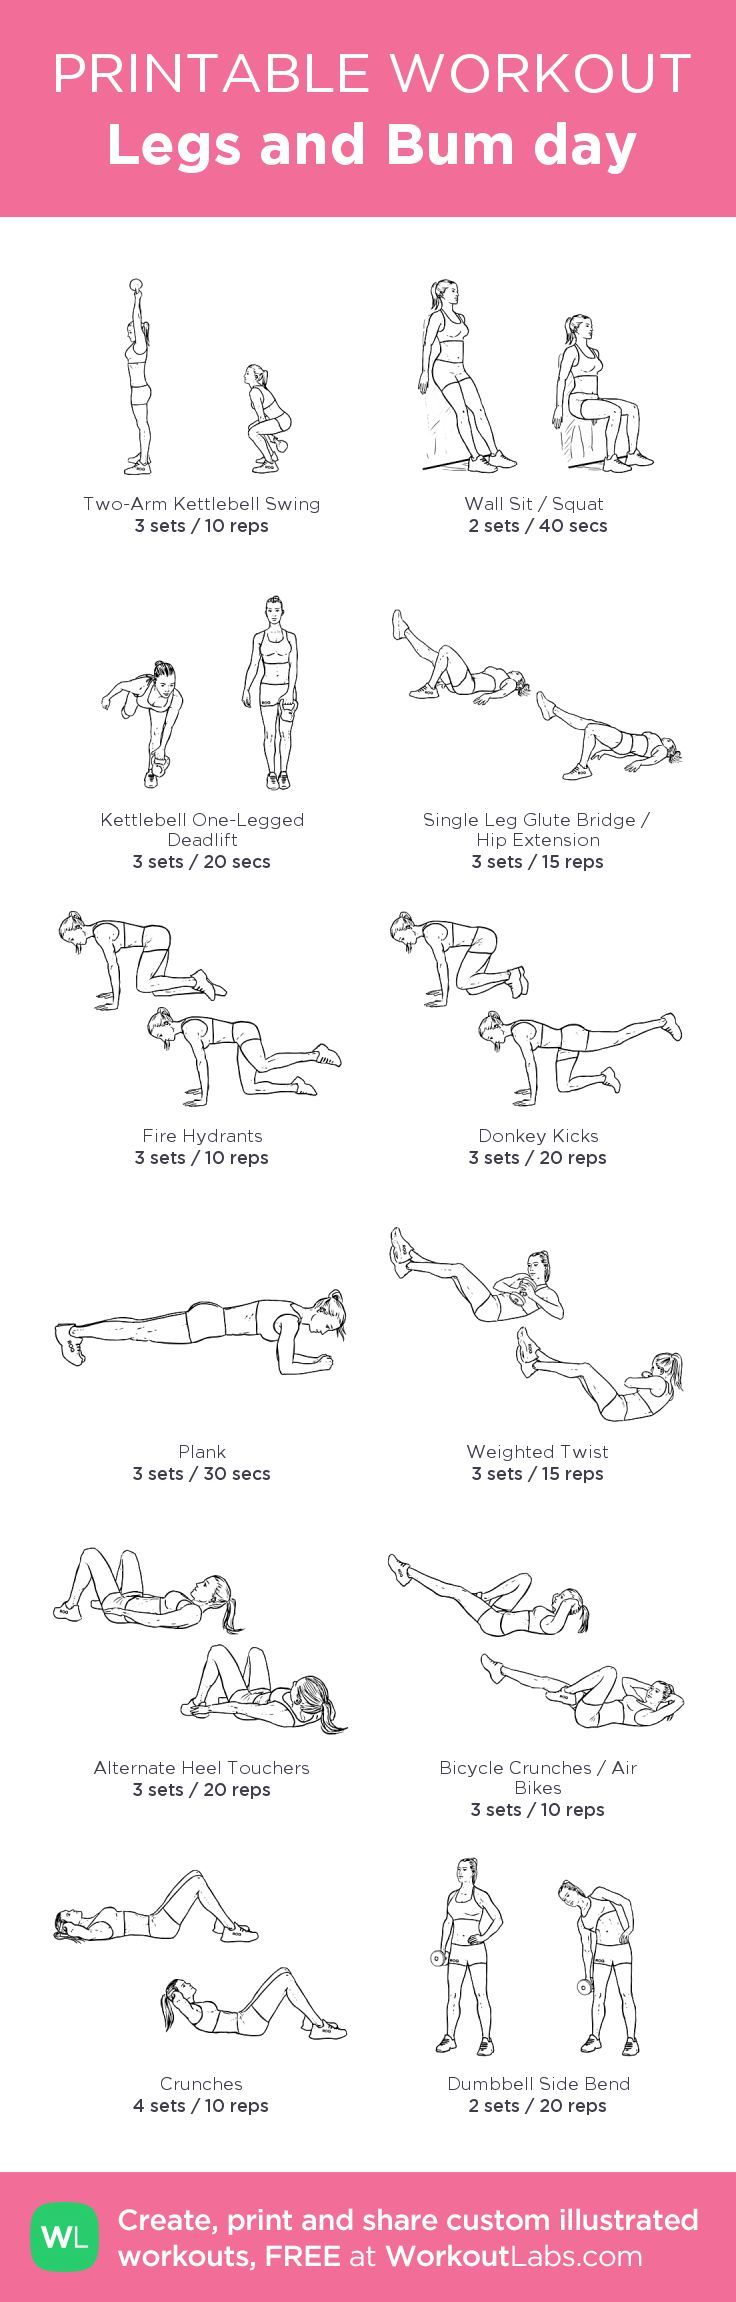 Best workout tip : Workout : Legs and Bum day | Workout inspiration ...